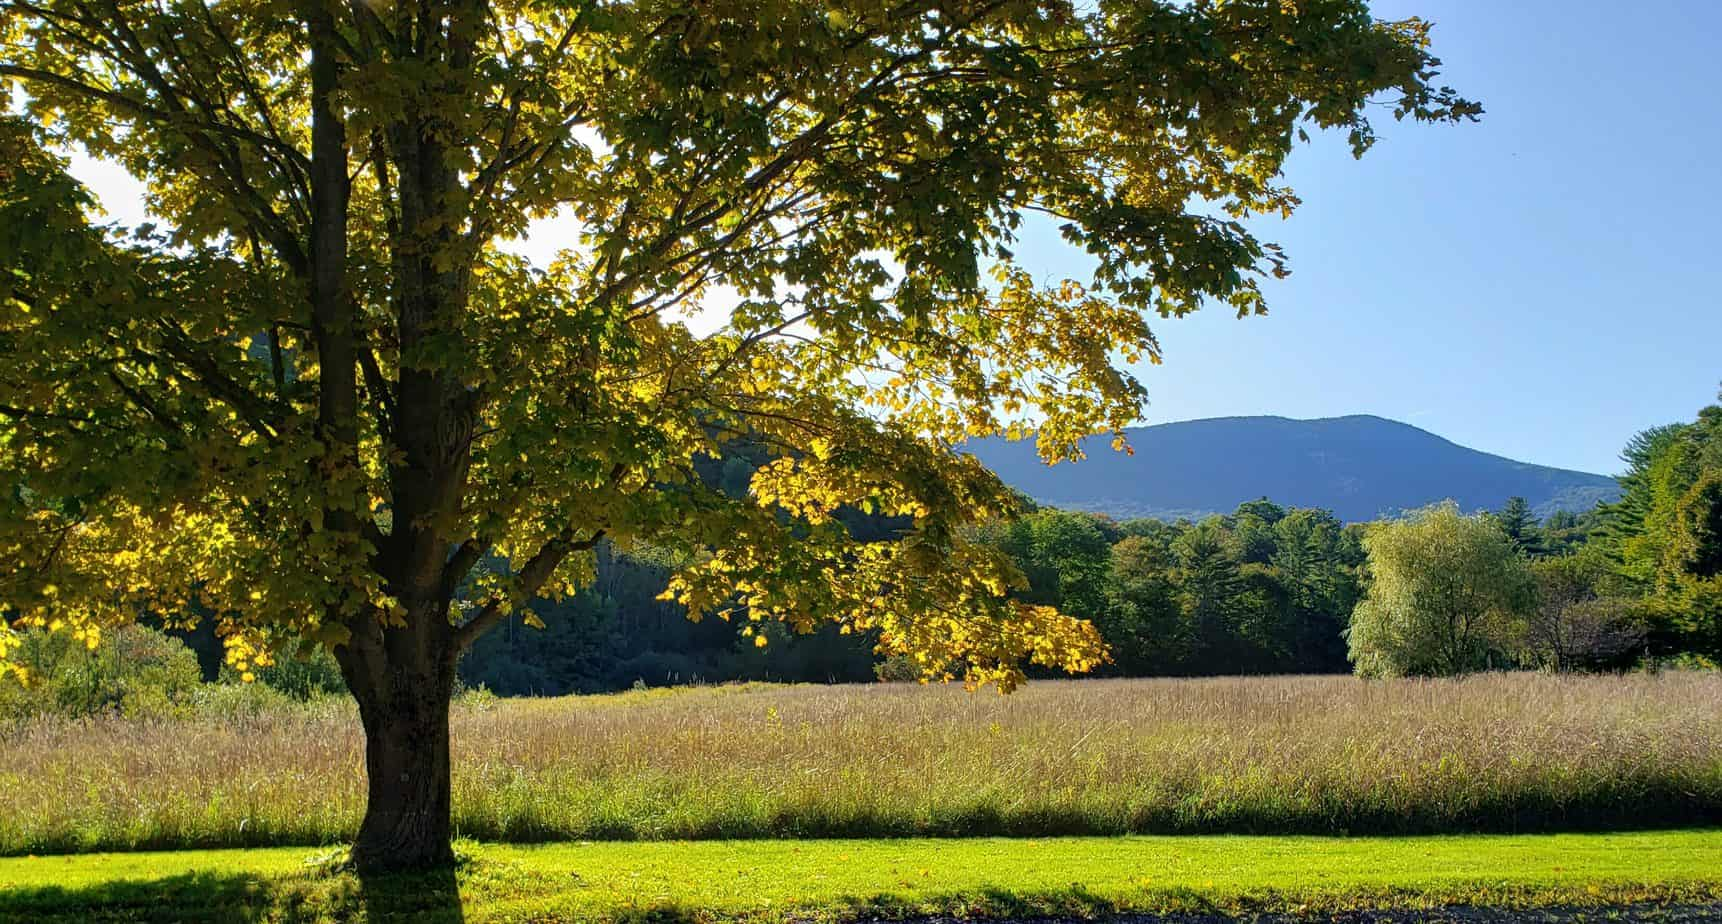 vermont scenery - golden hour with maple tree and blue mountain in distance -things to do in manchester vt